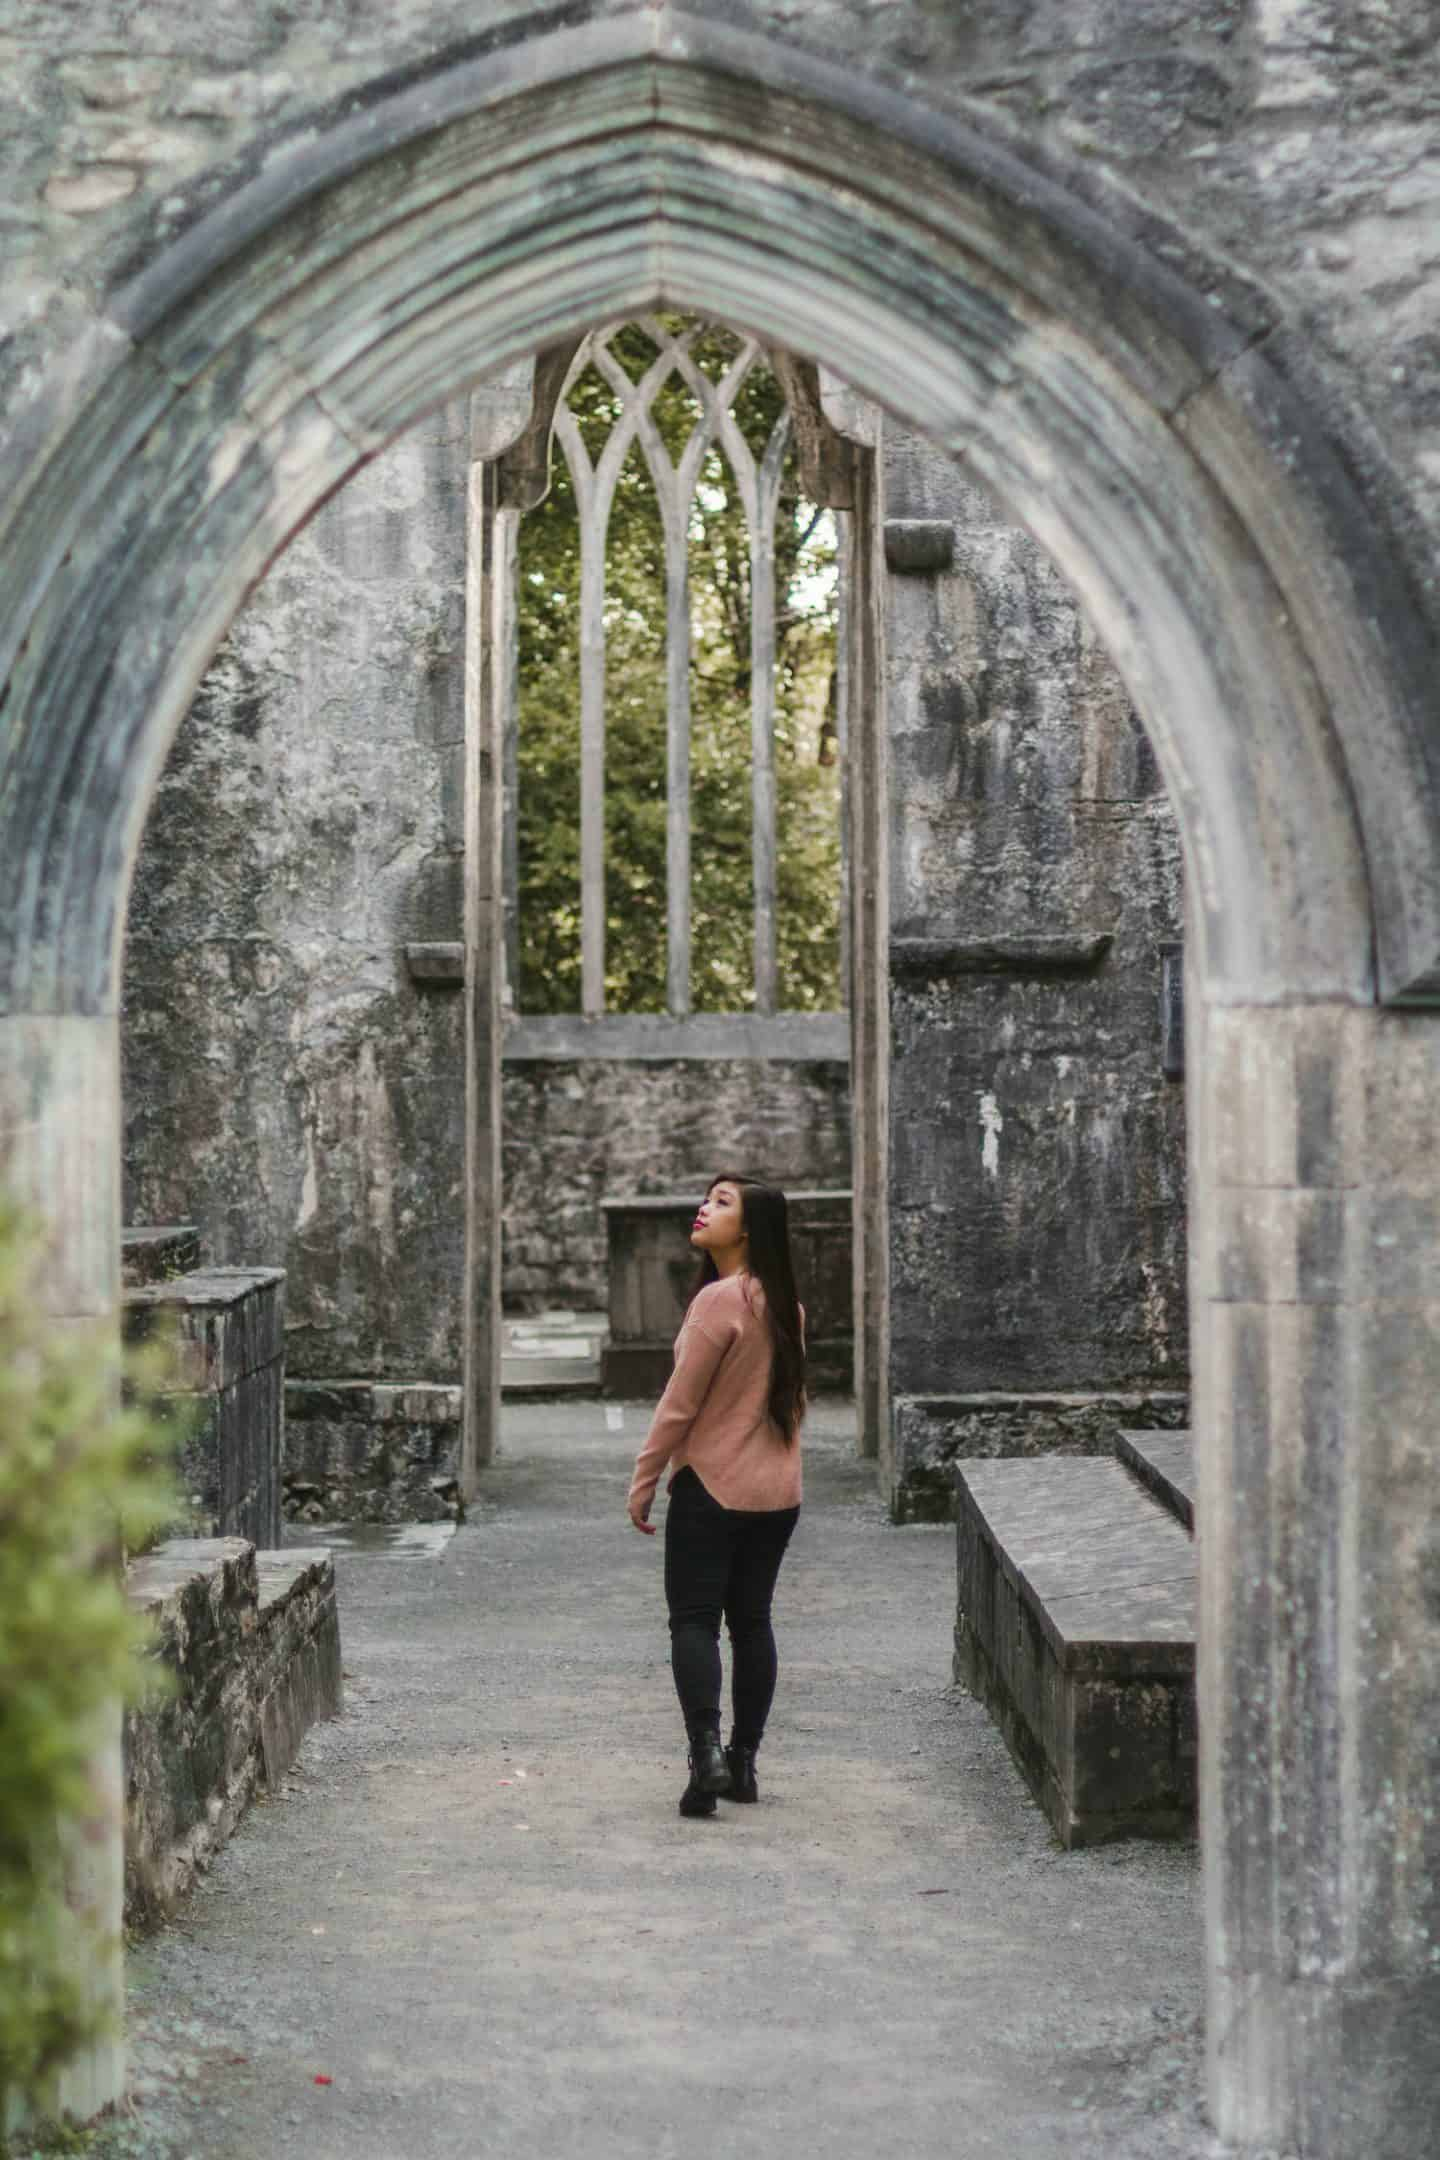 Muckross Abbey, Ireland